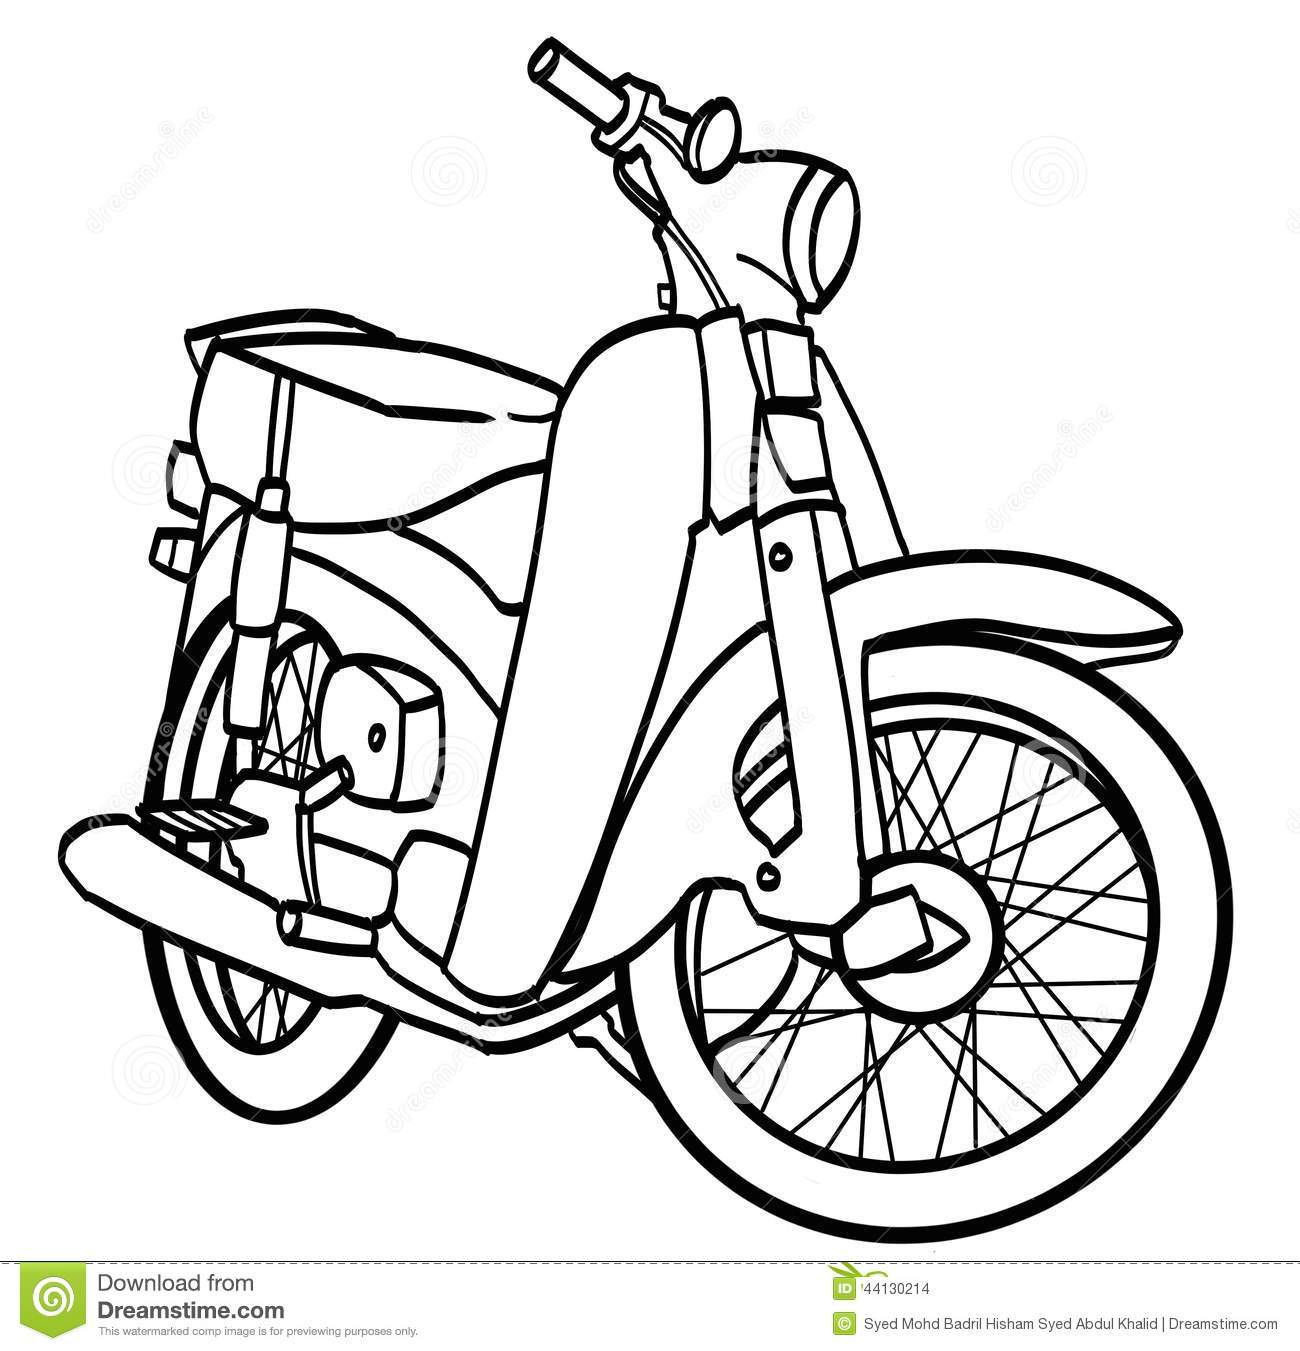 Motorcycle clipart simple. Drawing at paintingvalley com